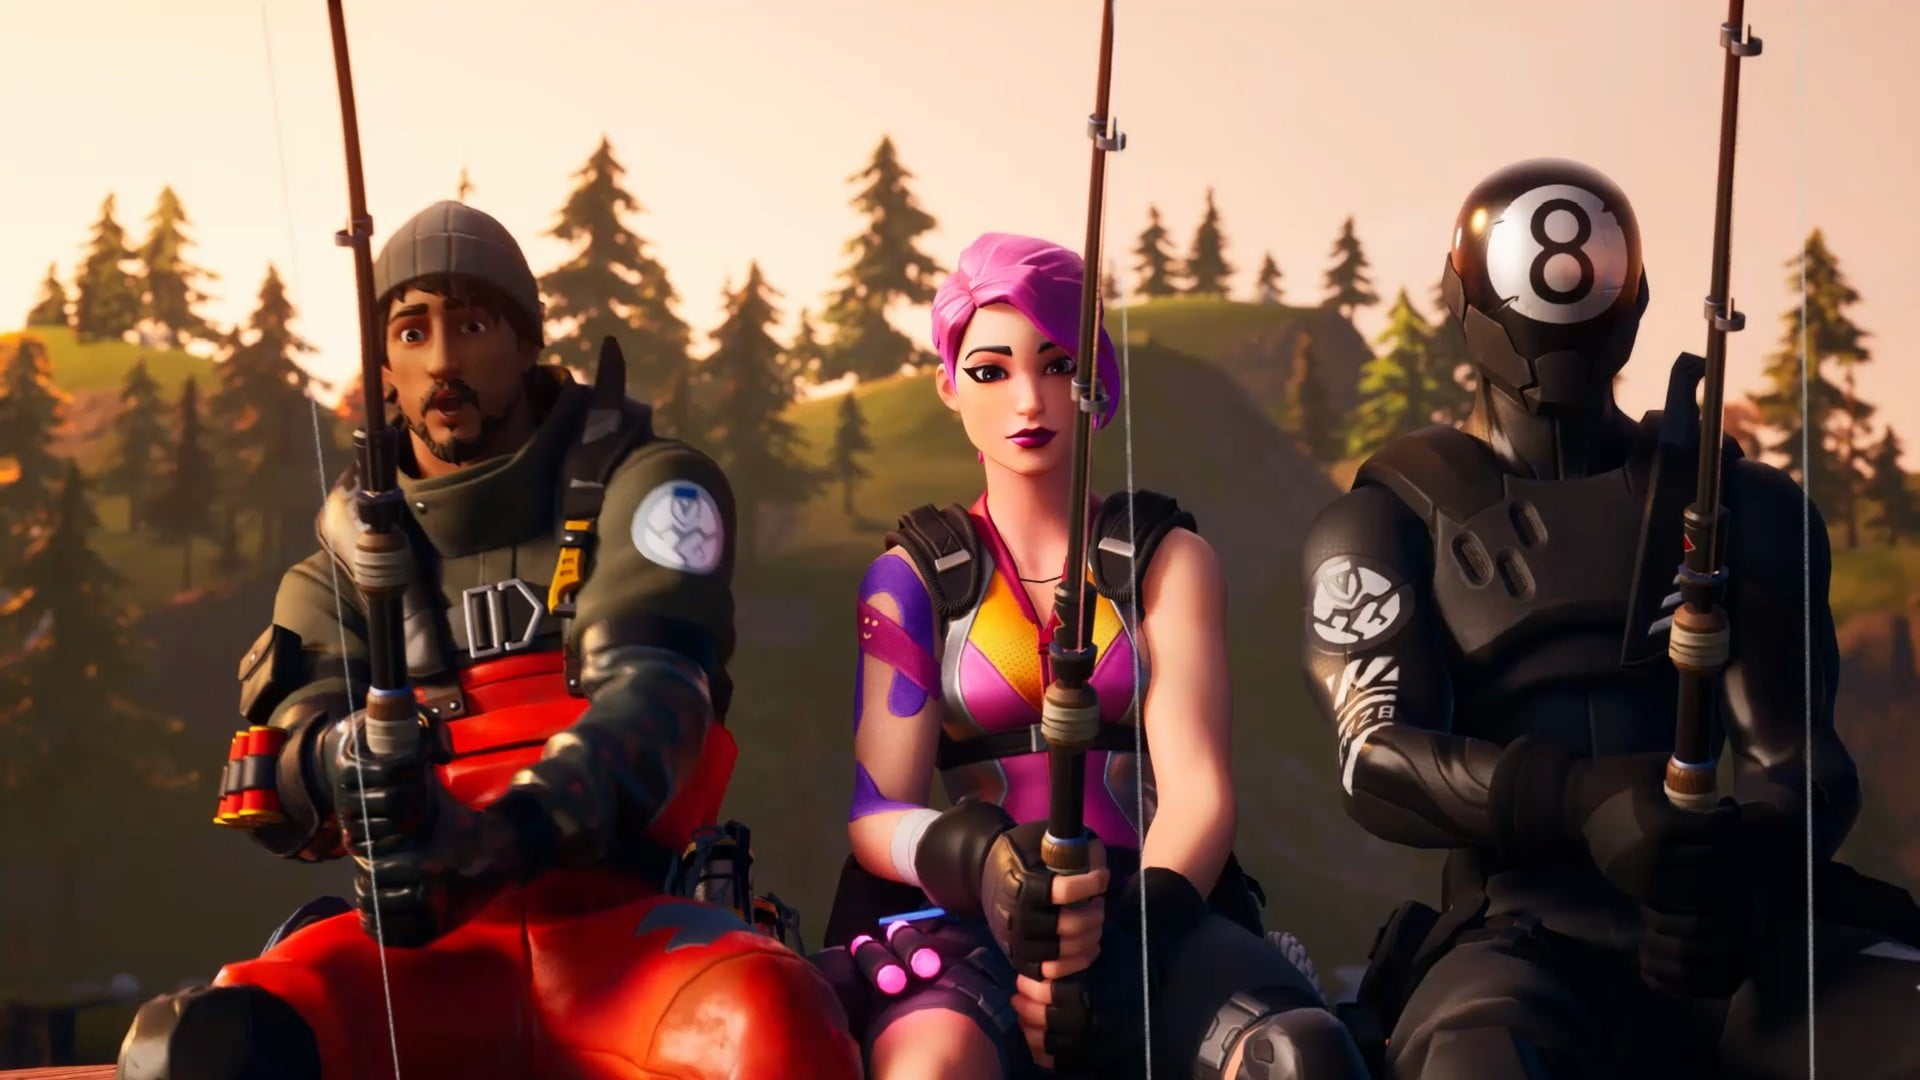 Boat Battles Fishing Swimming Here S What S New In Fortnite Chapter 2 Digital Trends